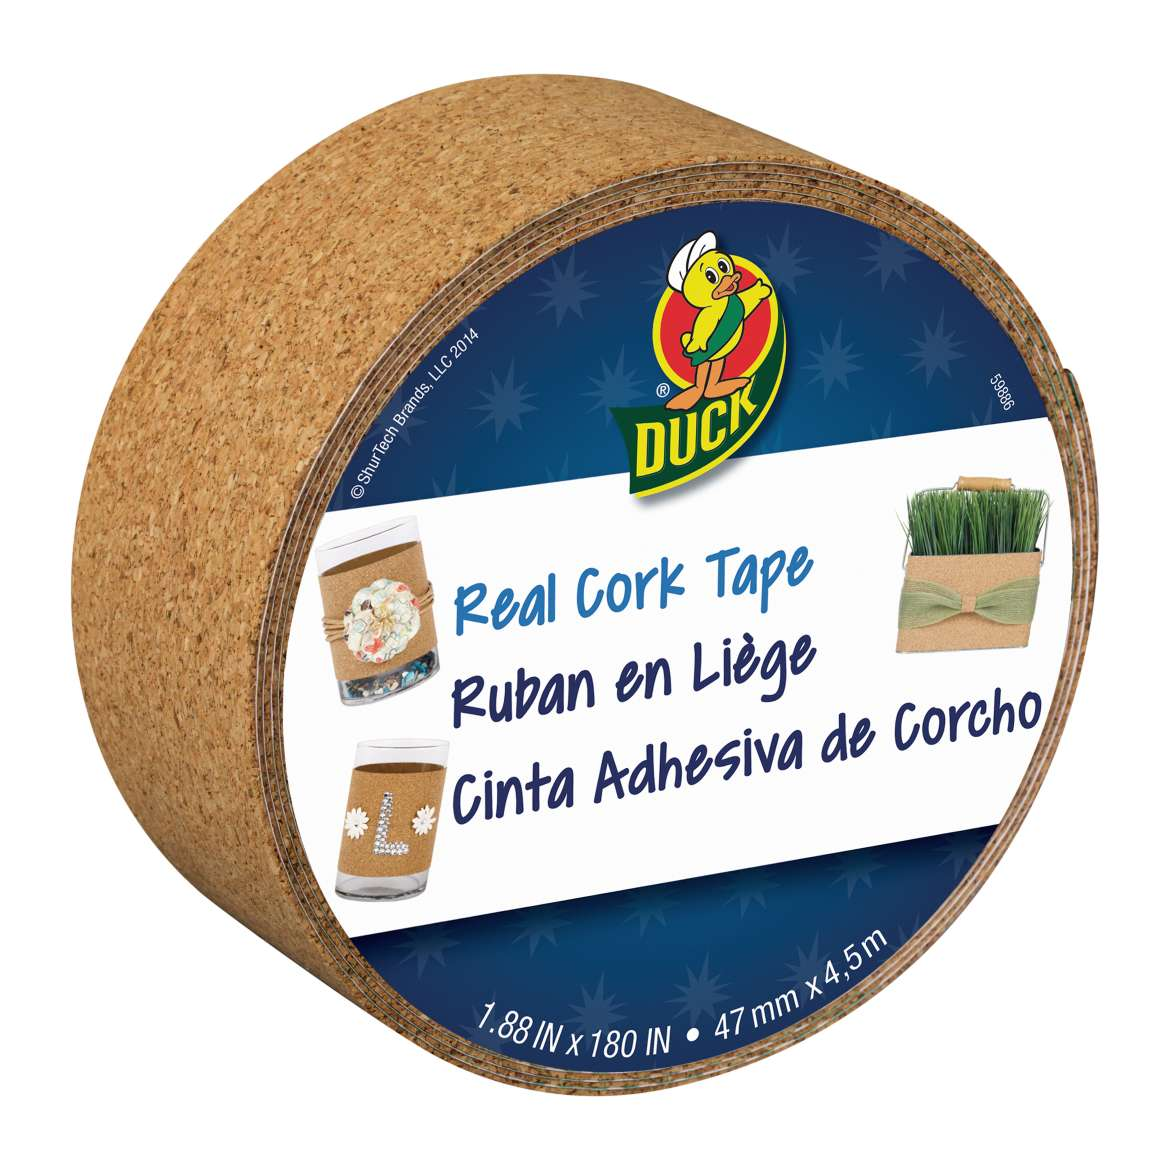 Real Cork Tape Image